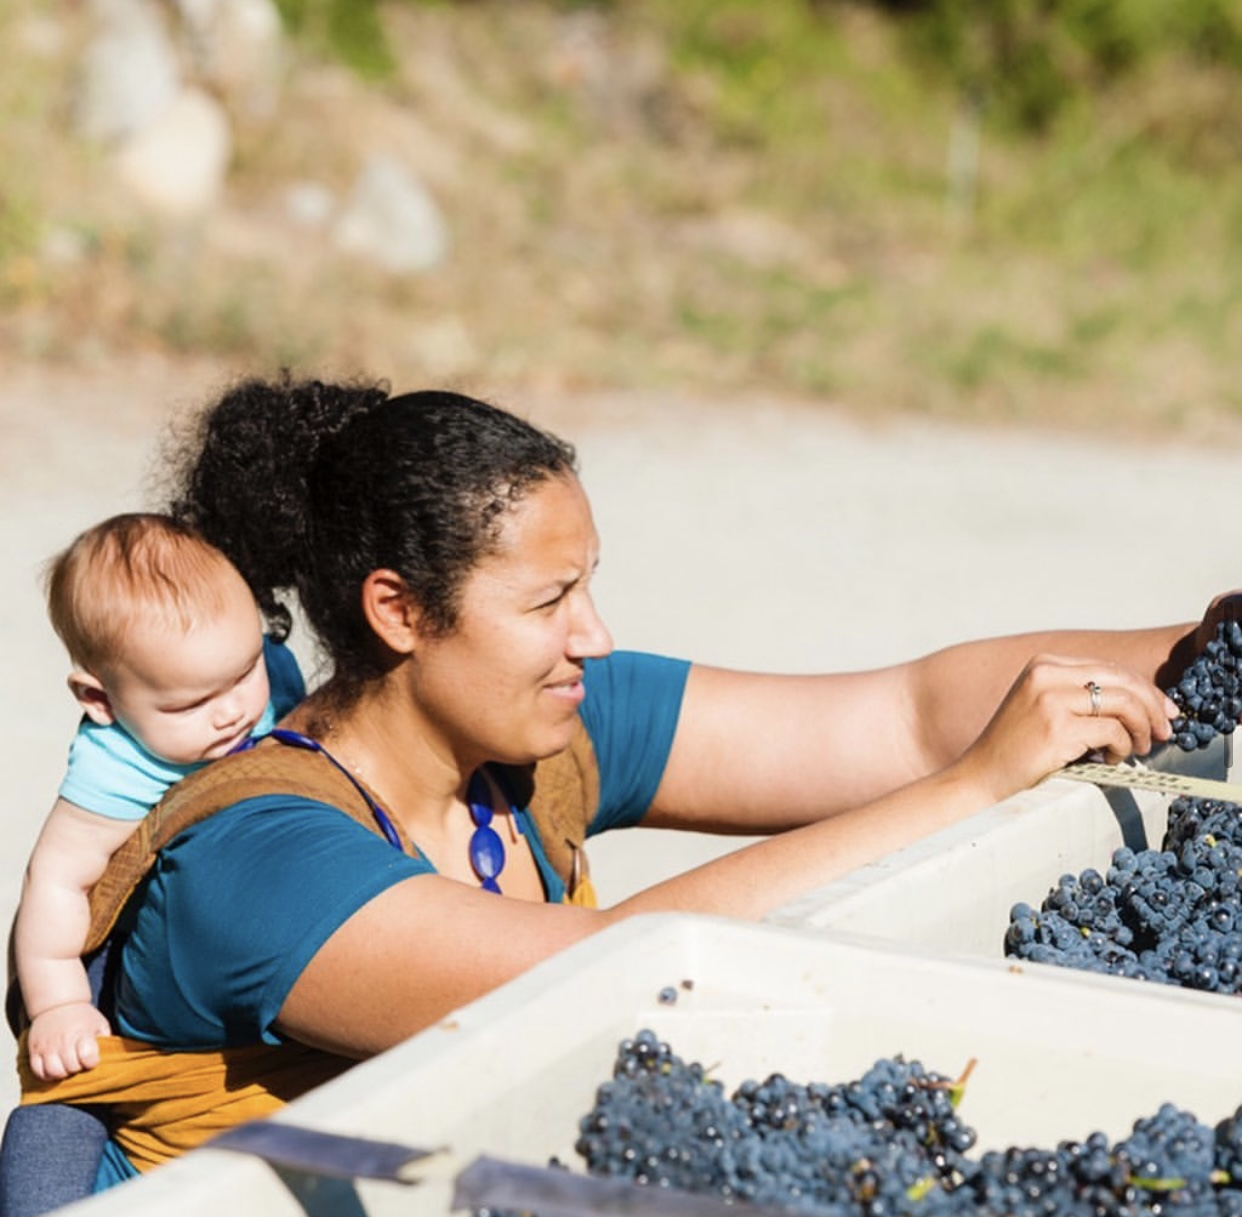 A woman with an infant strapped to her back holds and inspects a dark purple grape cluster. Bins of grapes are in front of her.